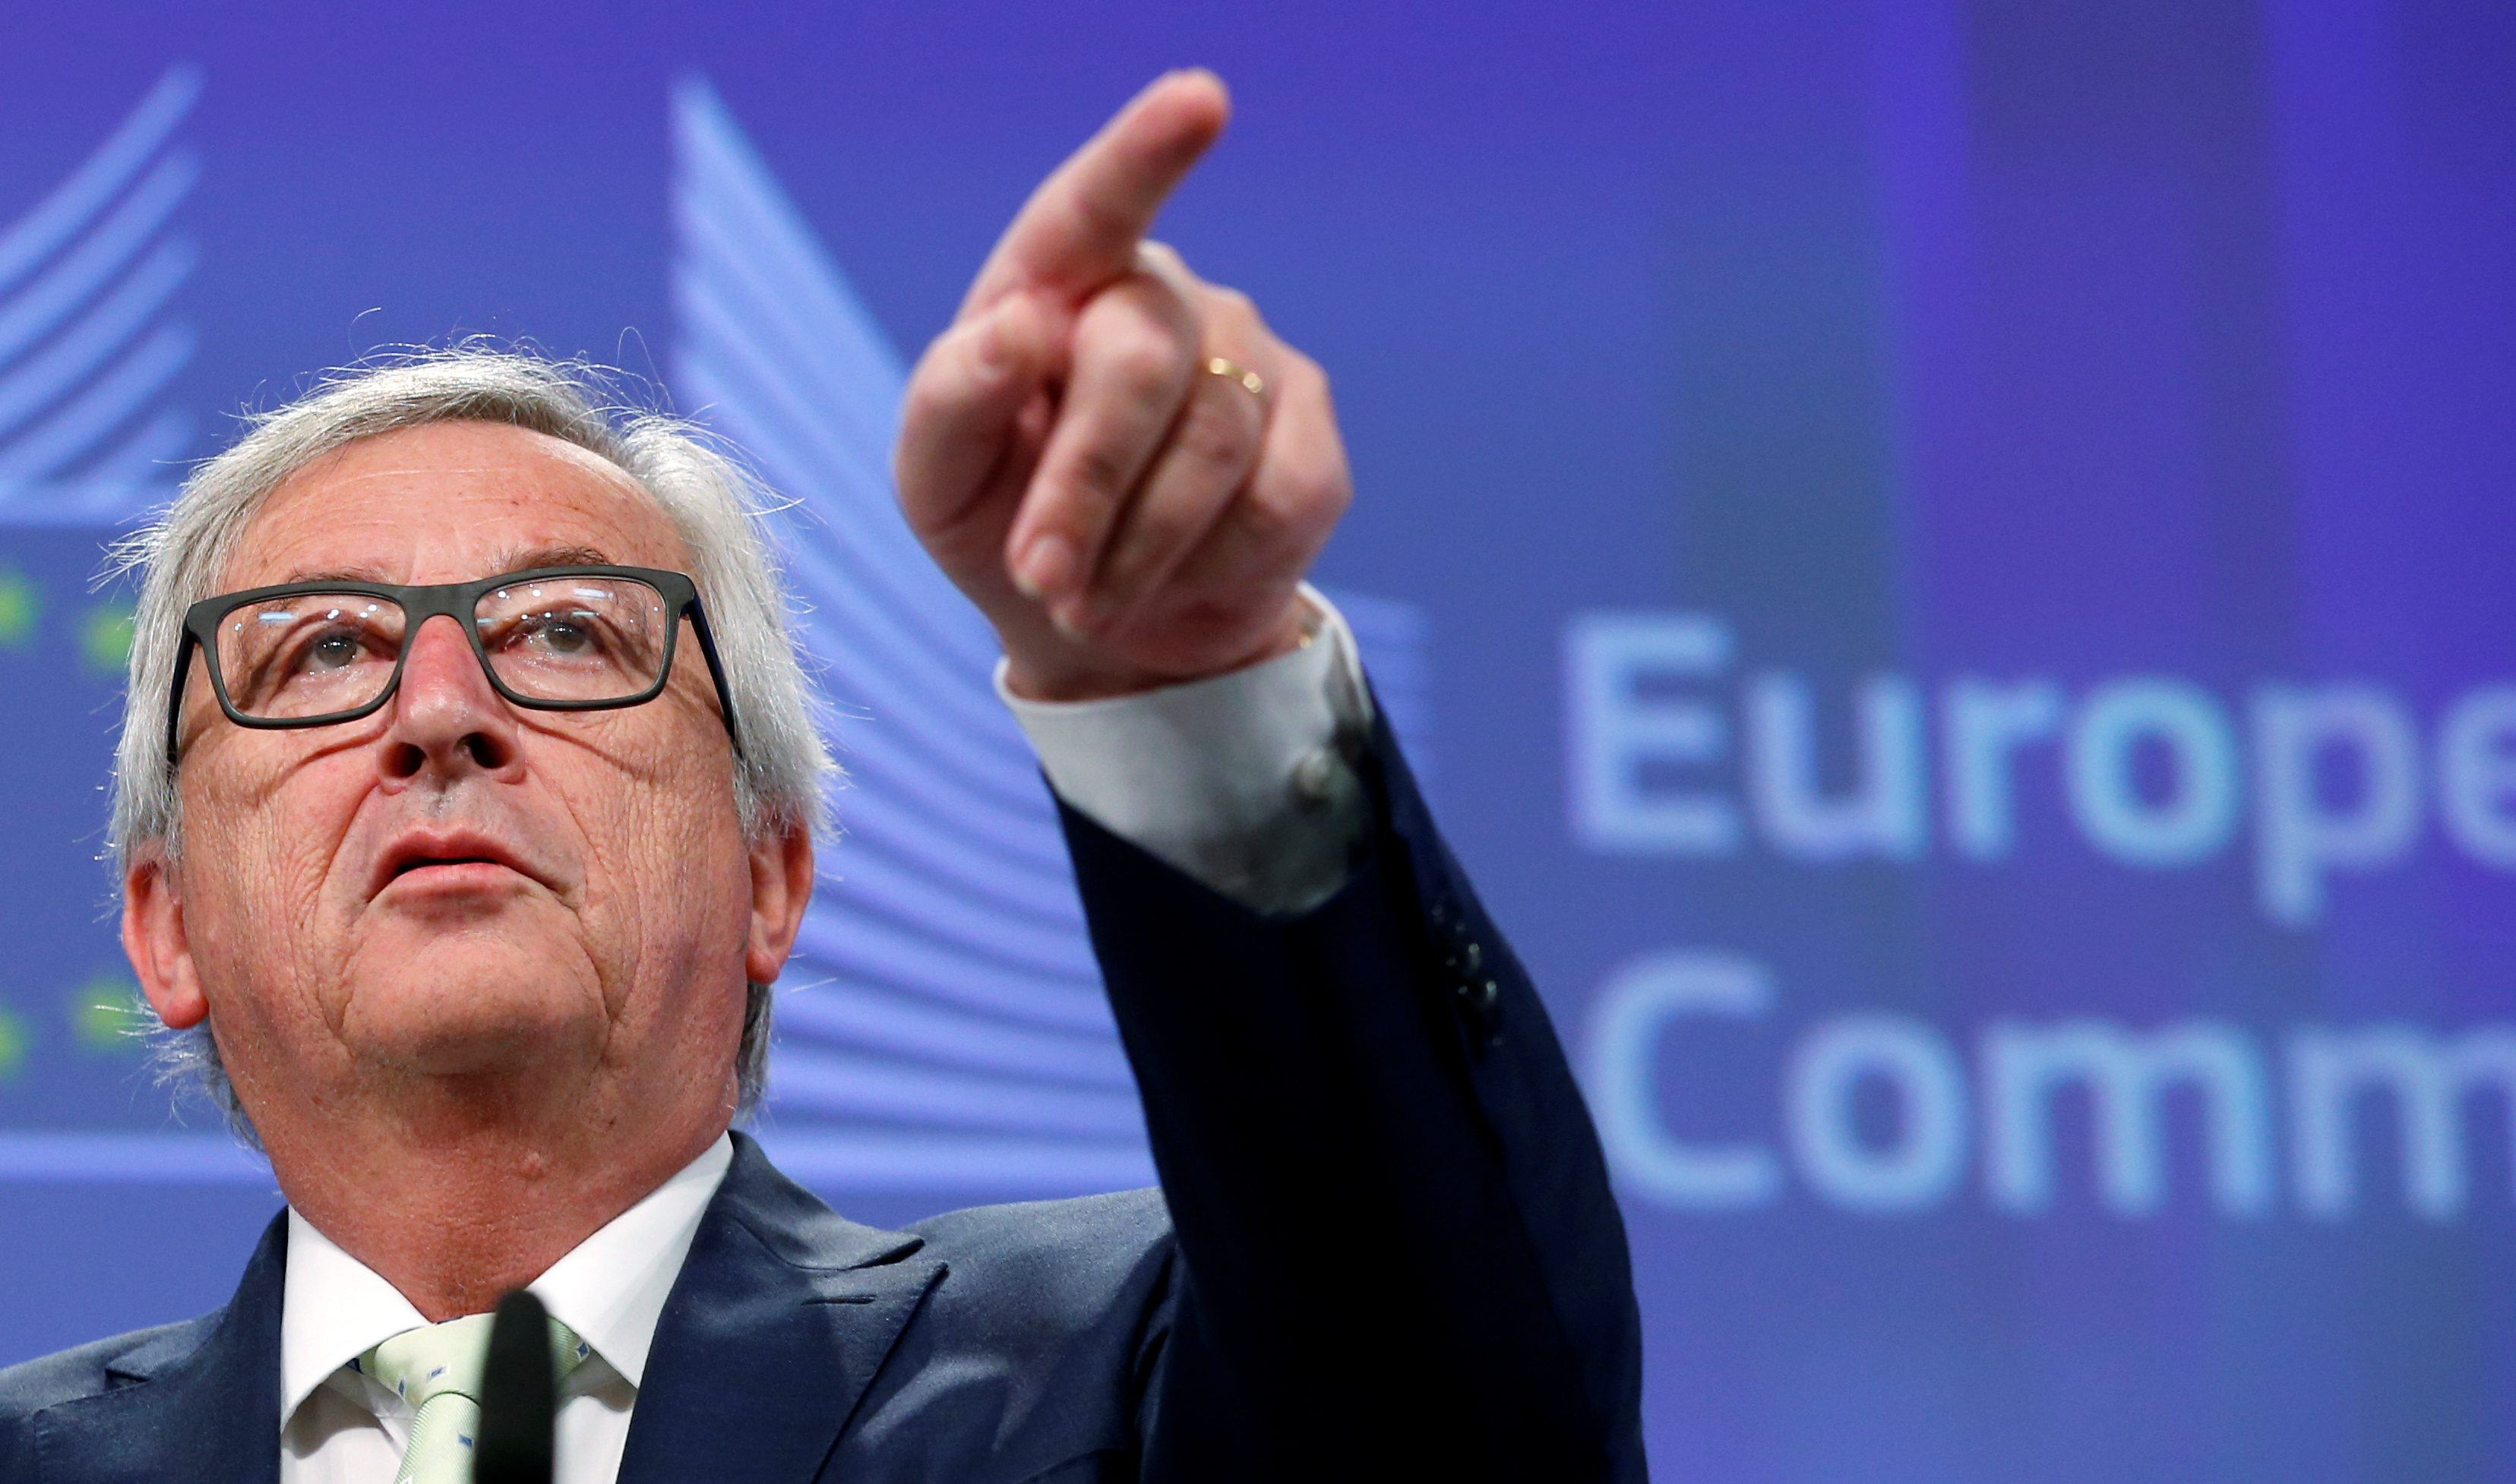 EU Commission President Juncker briefs the media after Britain voted to leave the bloc, in Brussels